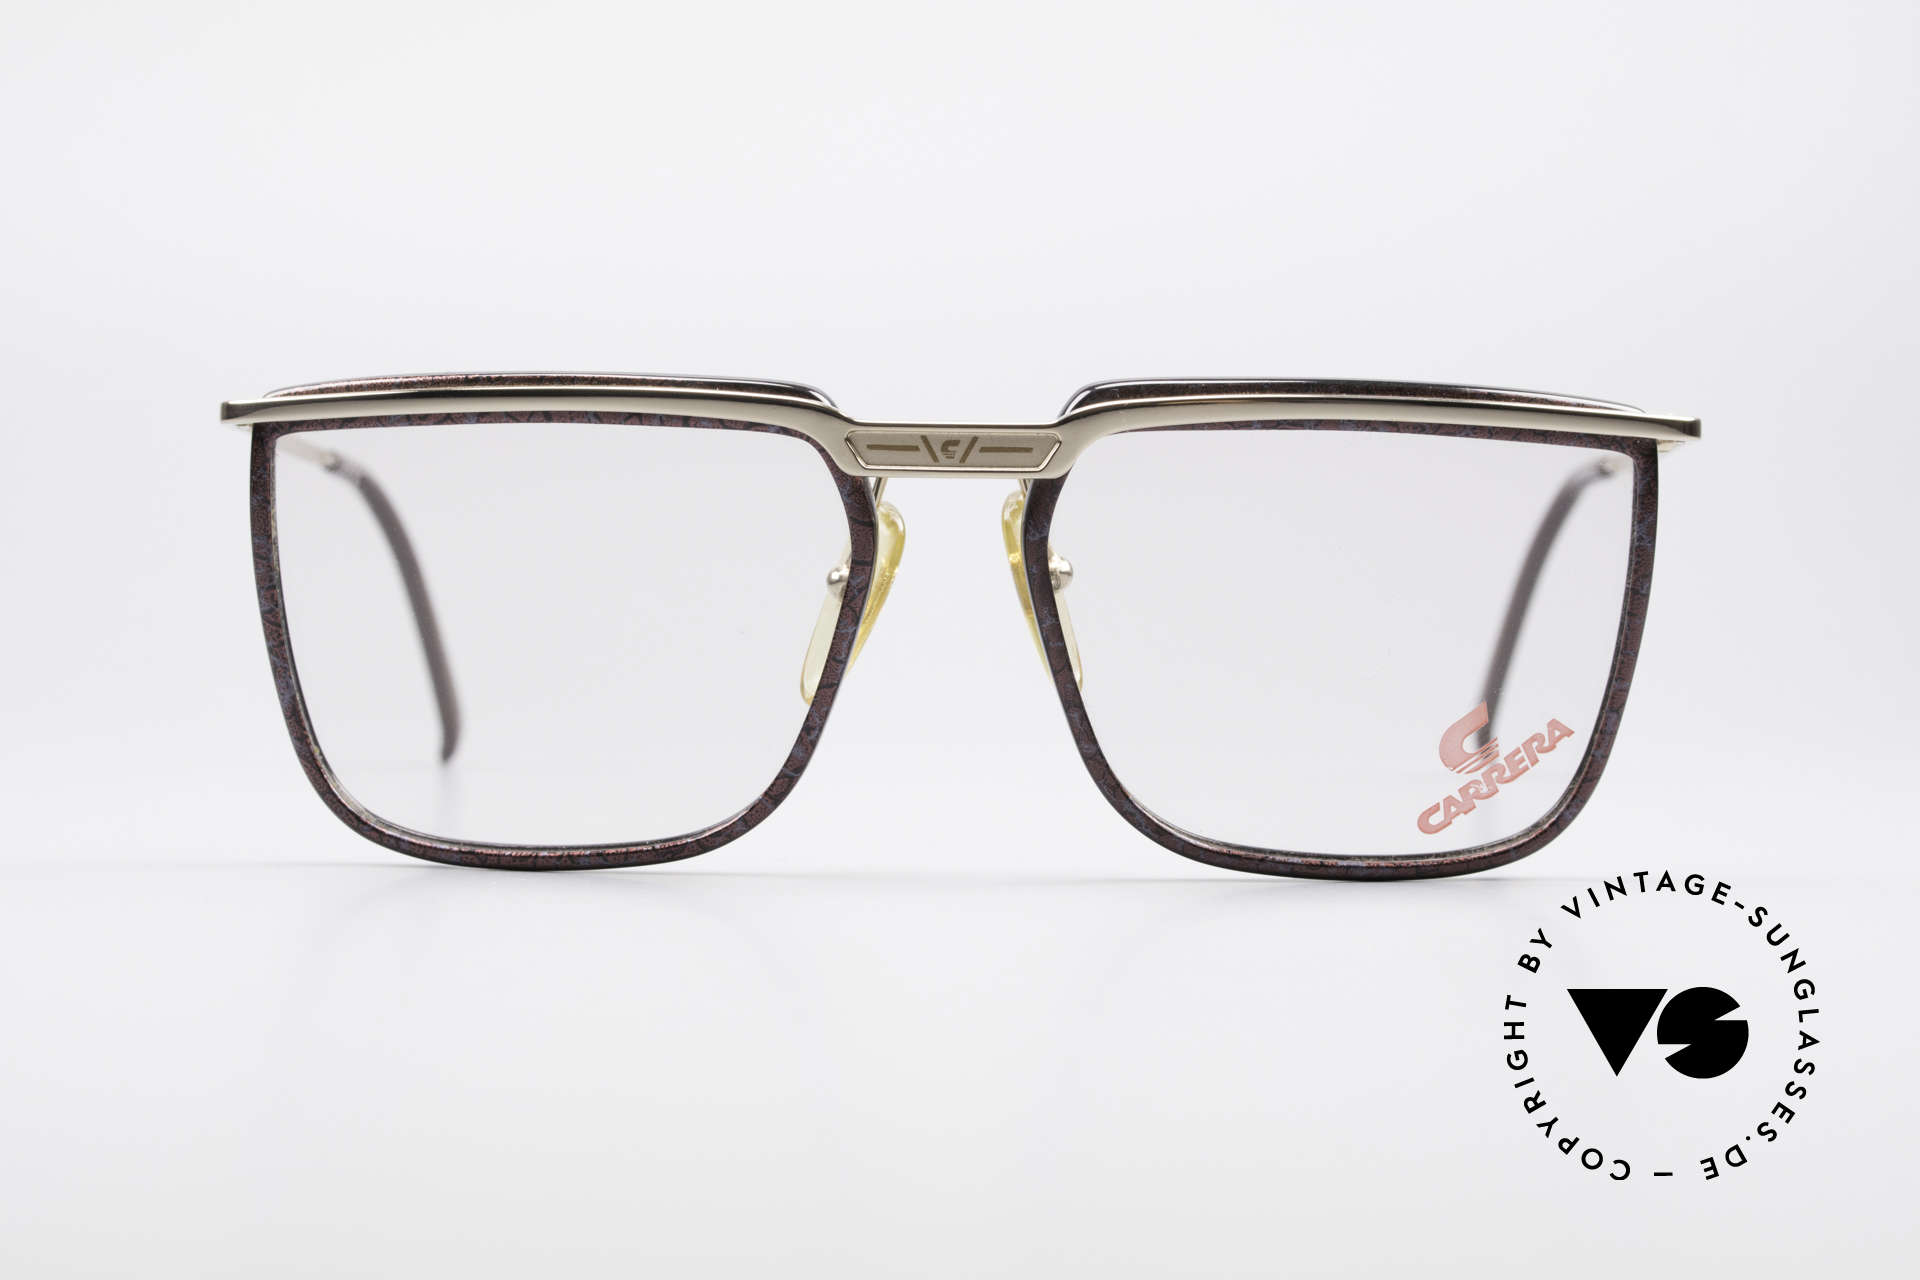 Carrera 5376 Square Vintage Carbon Frame, gold-plated frame with CARBON lens mounting, Made for Men